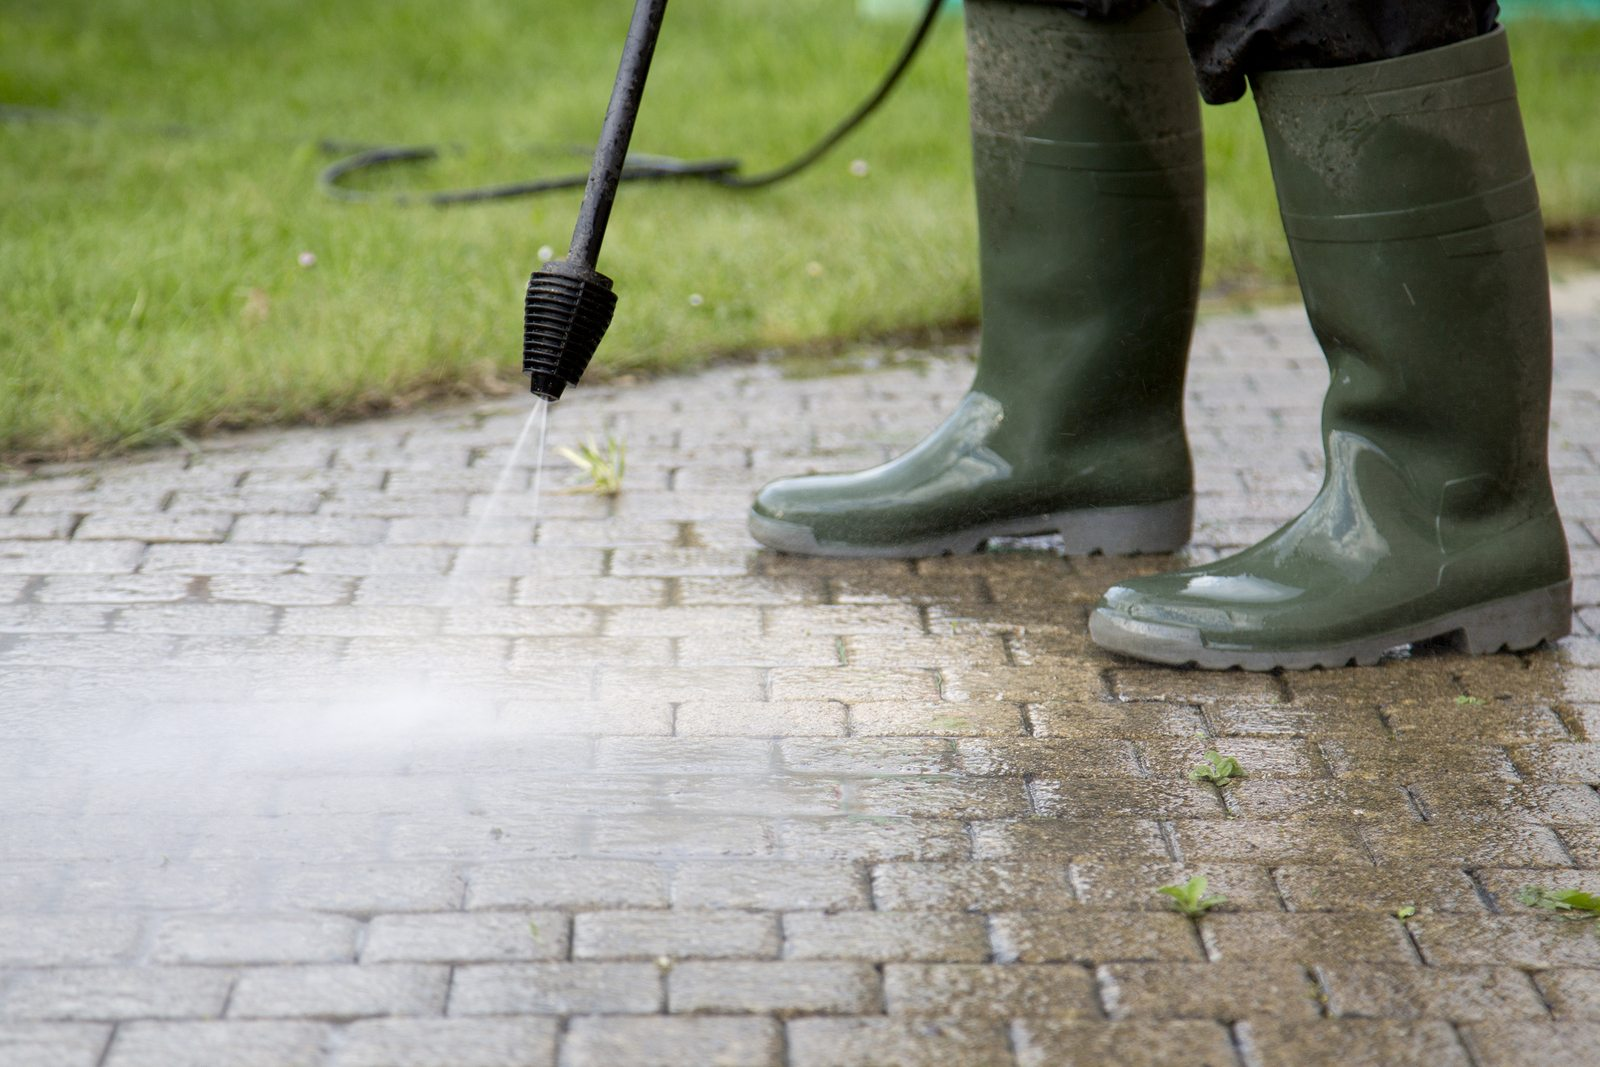 Exercise Mark Making Techniques additionally Smart Phone Lanyard moreover Power Wash Pros furthermore Power Washing furthermore Claireh0toms hazblog. on pressure washing building